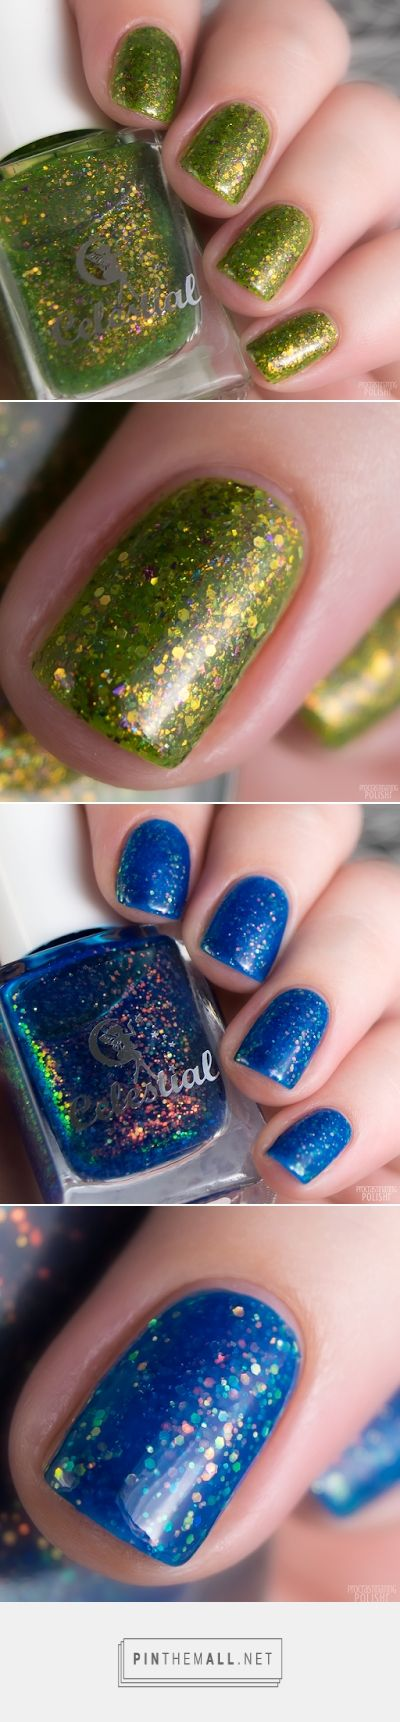 Celestial Cosmetics March Releases - Sparkly Jellies Eye of Envy Mesmerised